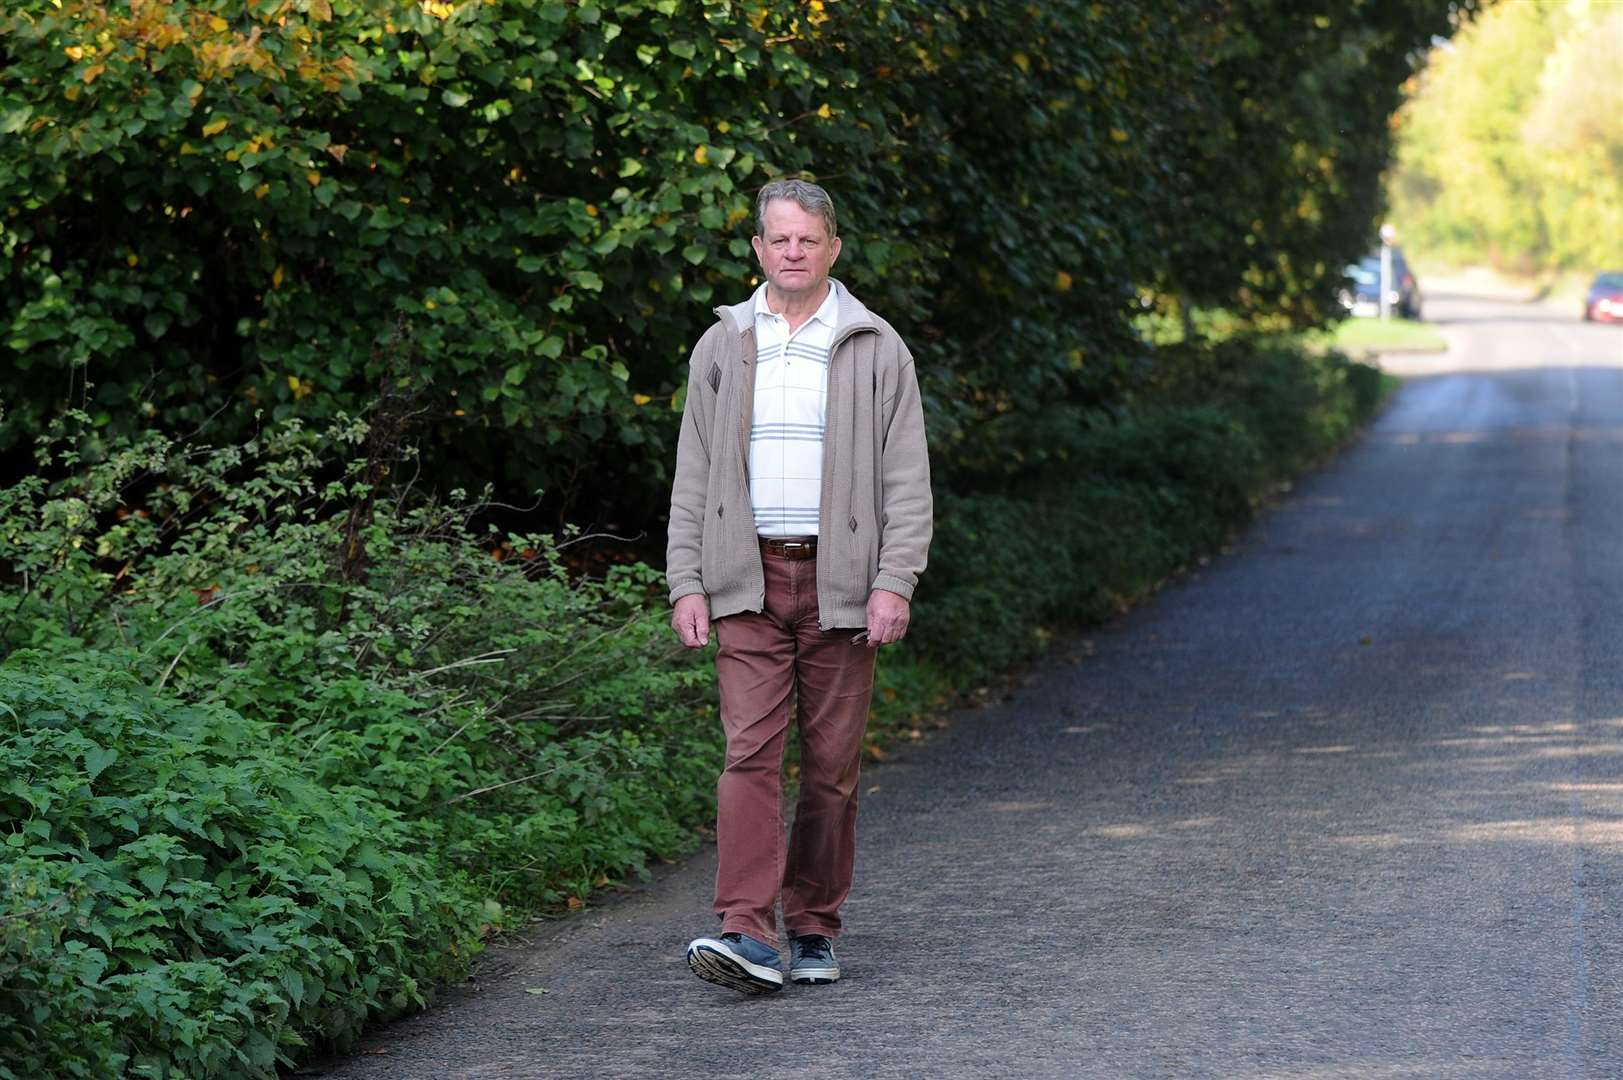 Alan Allum has raised concerns about the road near his house which does not have a footpath..Mr Allum walks along Middleton Road every day to walk his dogs, but said the lack of path and poor visability of road signs poses a constant danger for pedestrians......PICTURE: Mecha Morton... .. (4821412)